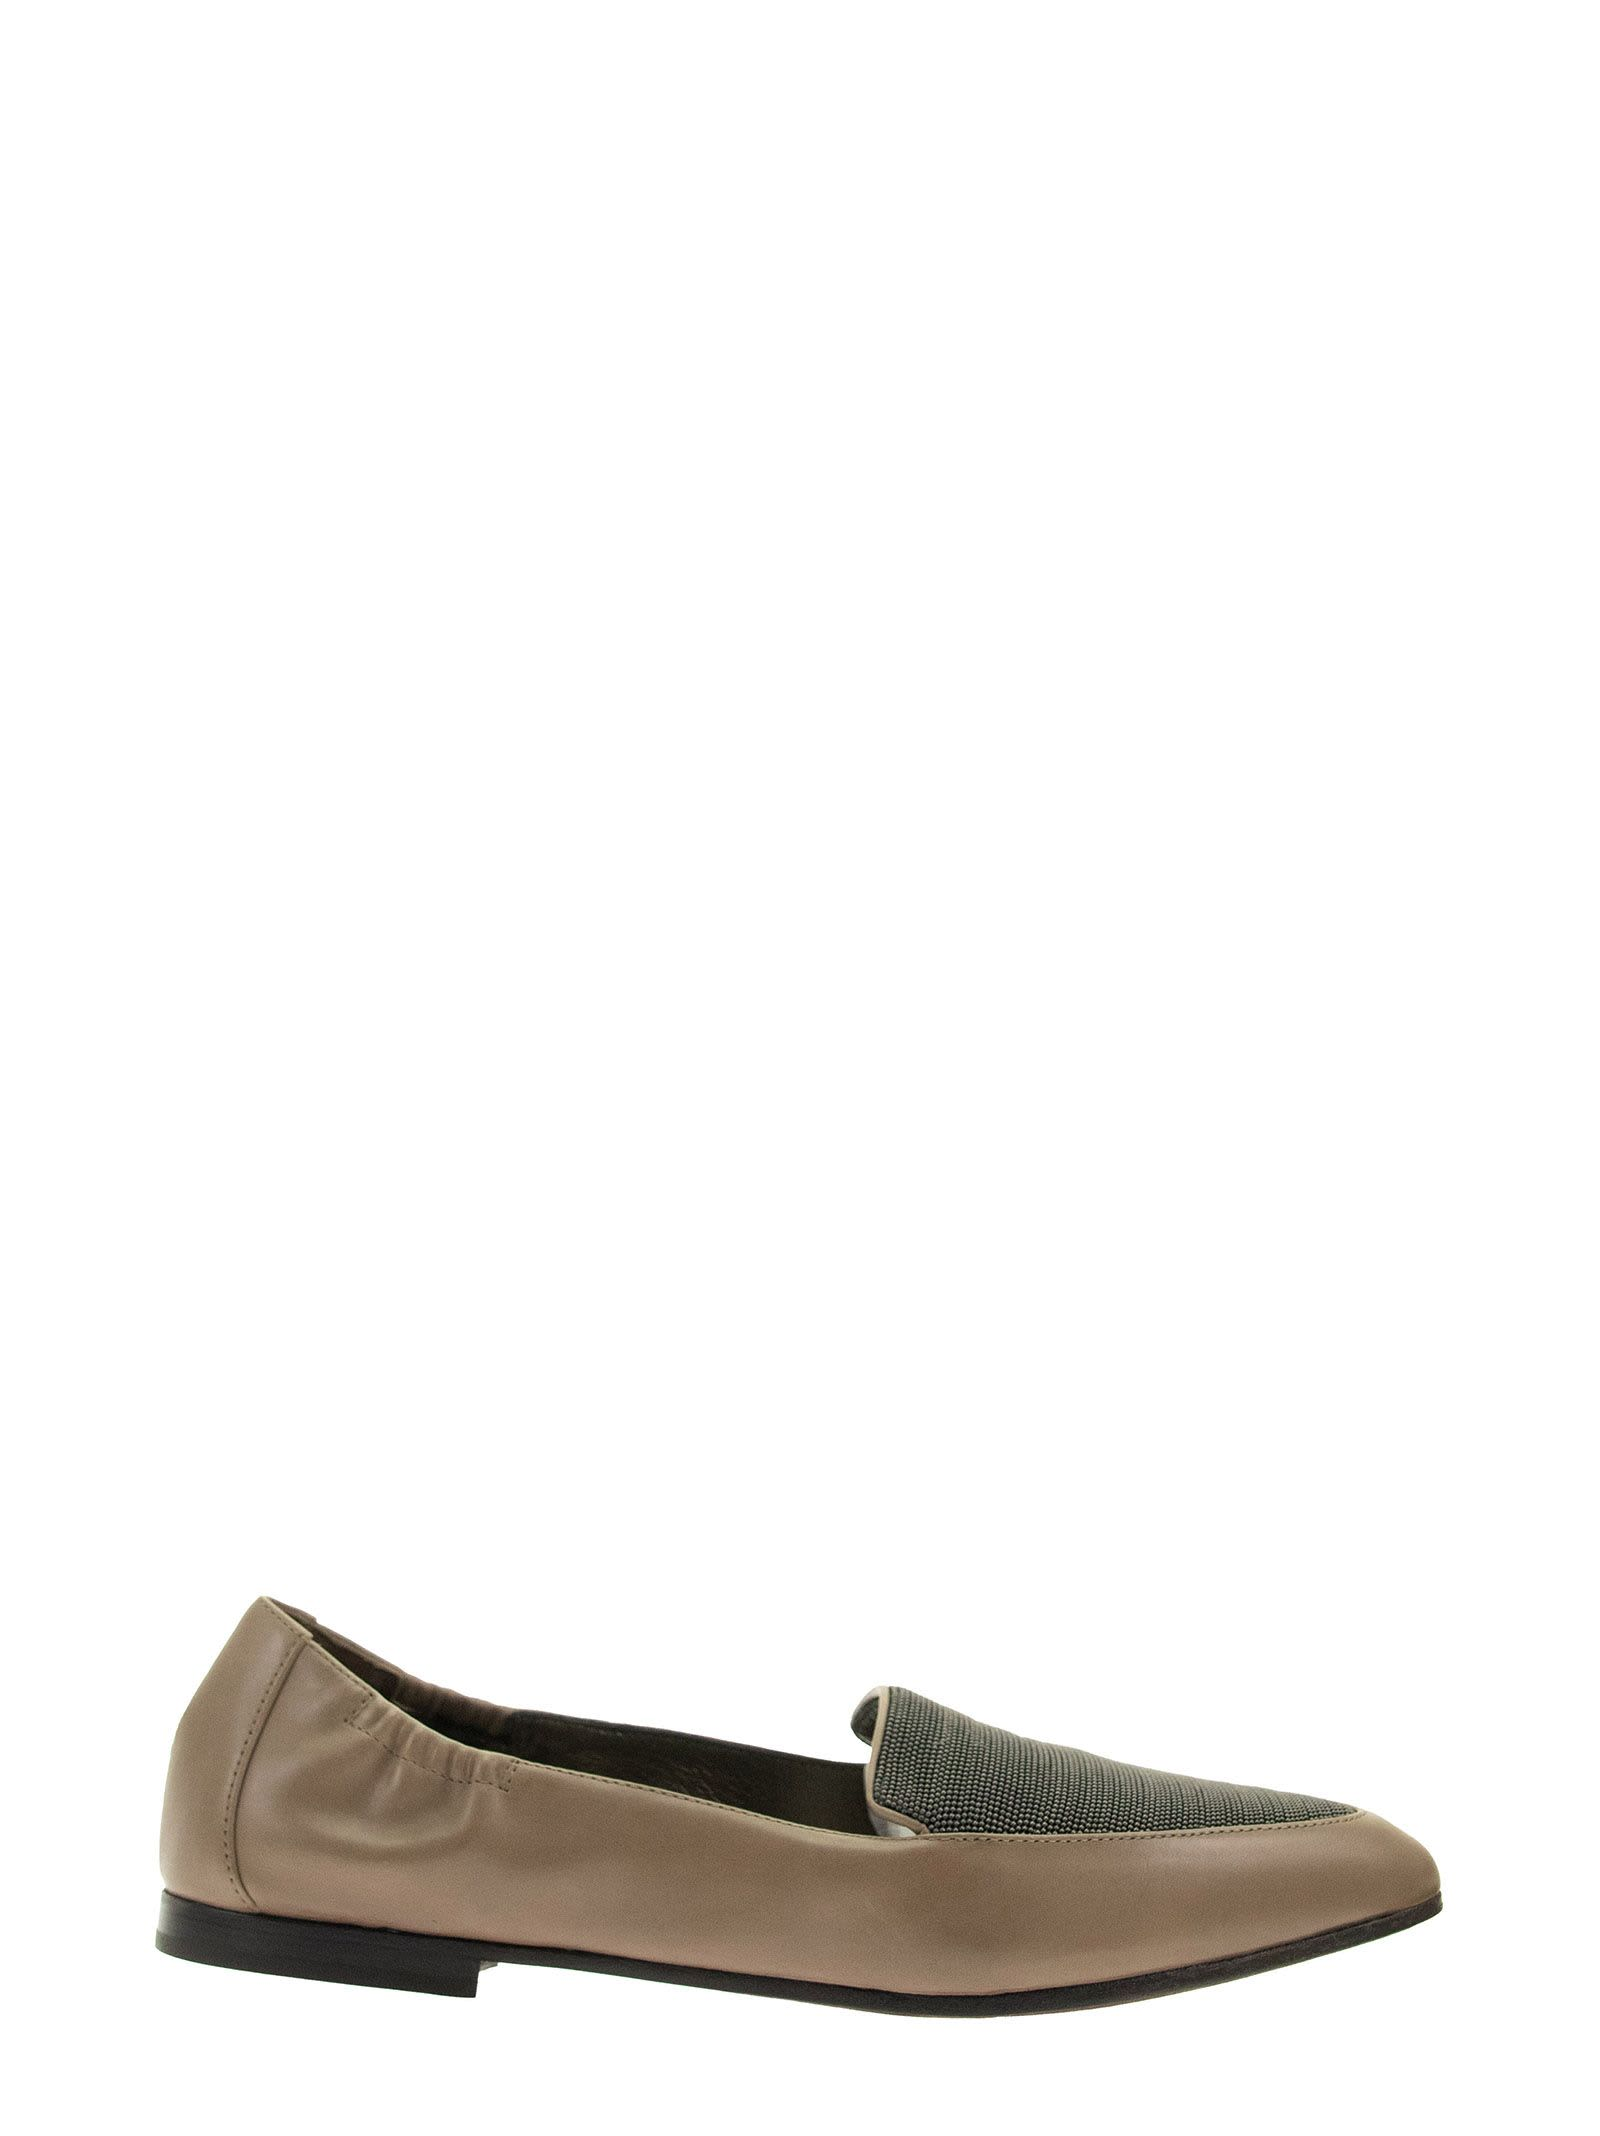 Brunello Cucinelli MOCCASINS SMOOTH CALFSKIN FLATS WITH PRECIOUS VAMP